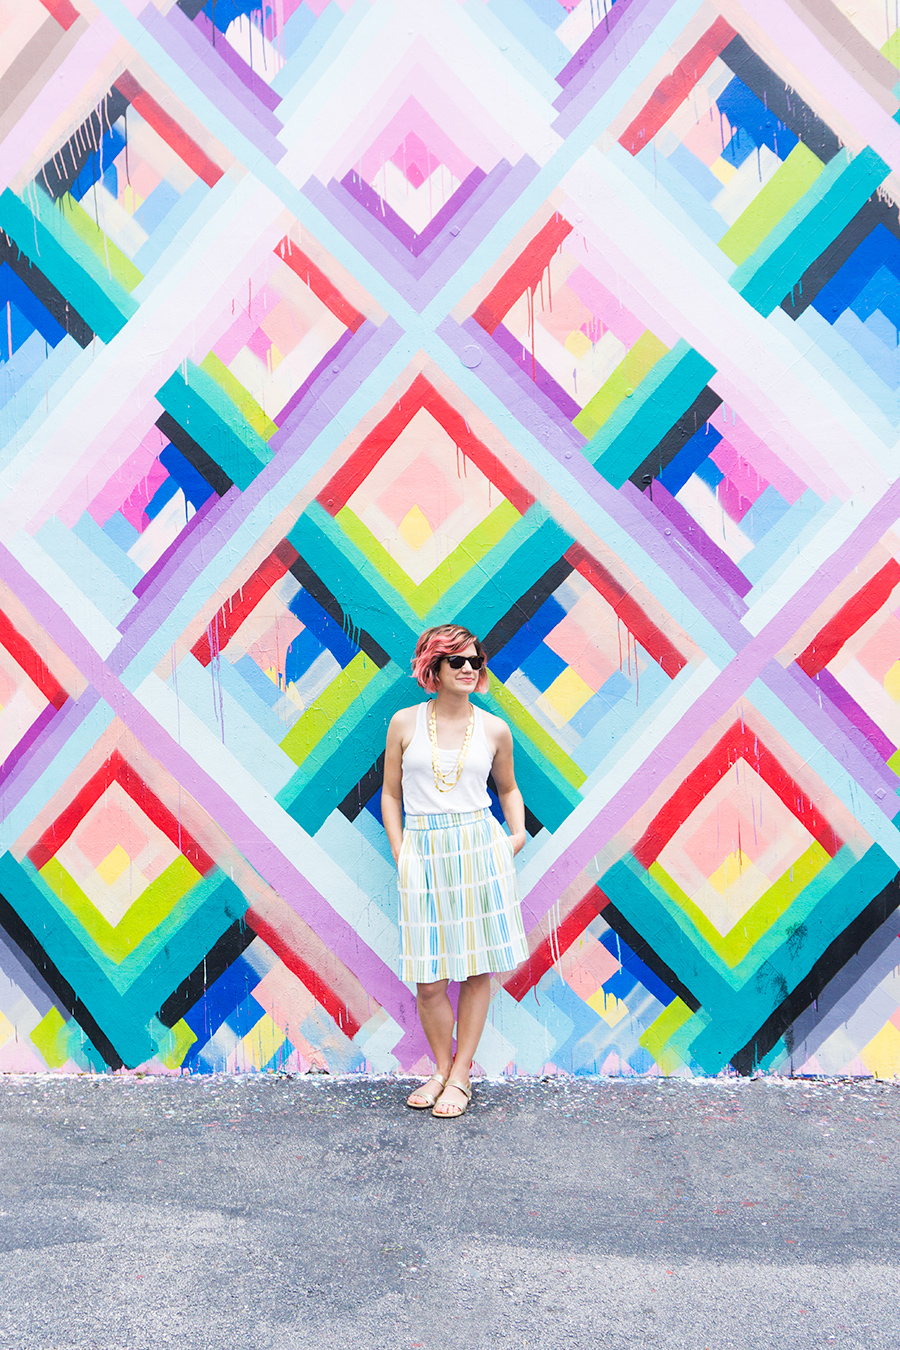 Blogger Sarah Hearts shares her thoughts on turning 30 and what she's learned in the past decade.